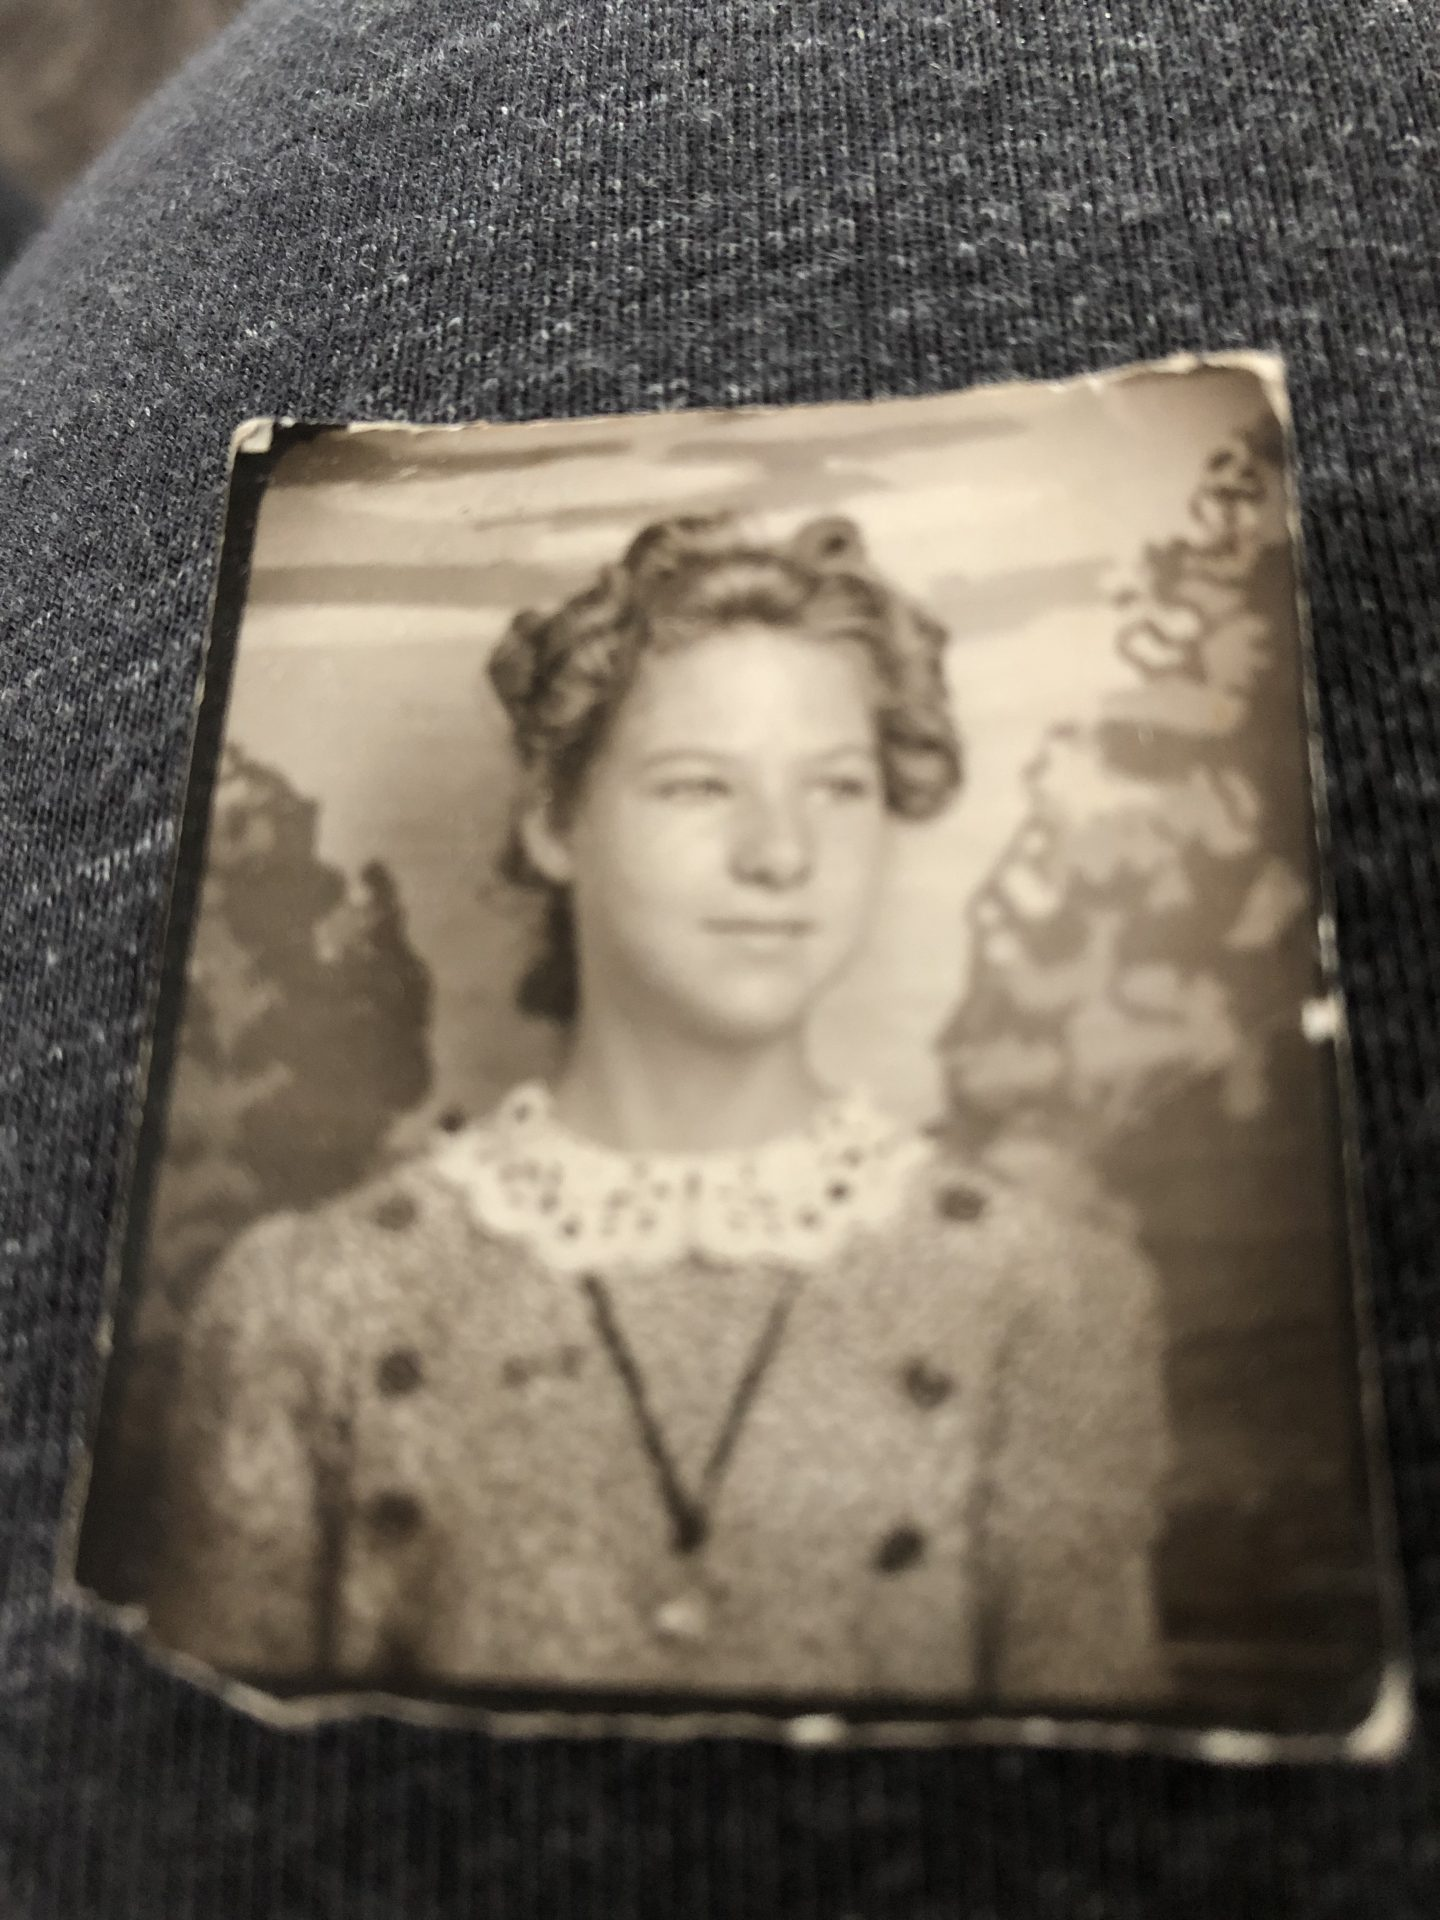 Mom in her Teens, her family called her LiL Queens, because she resembled a Queen in her French Lineage.